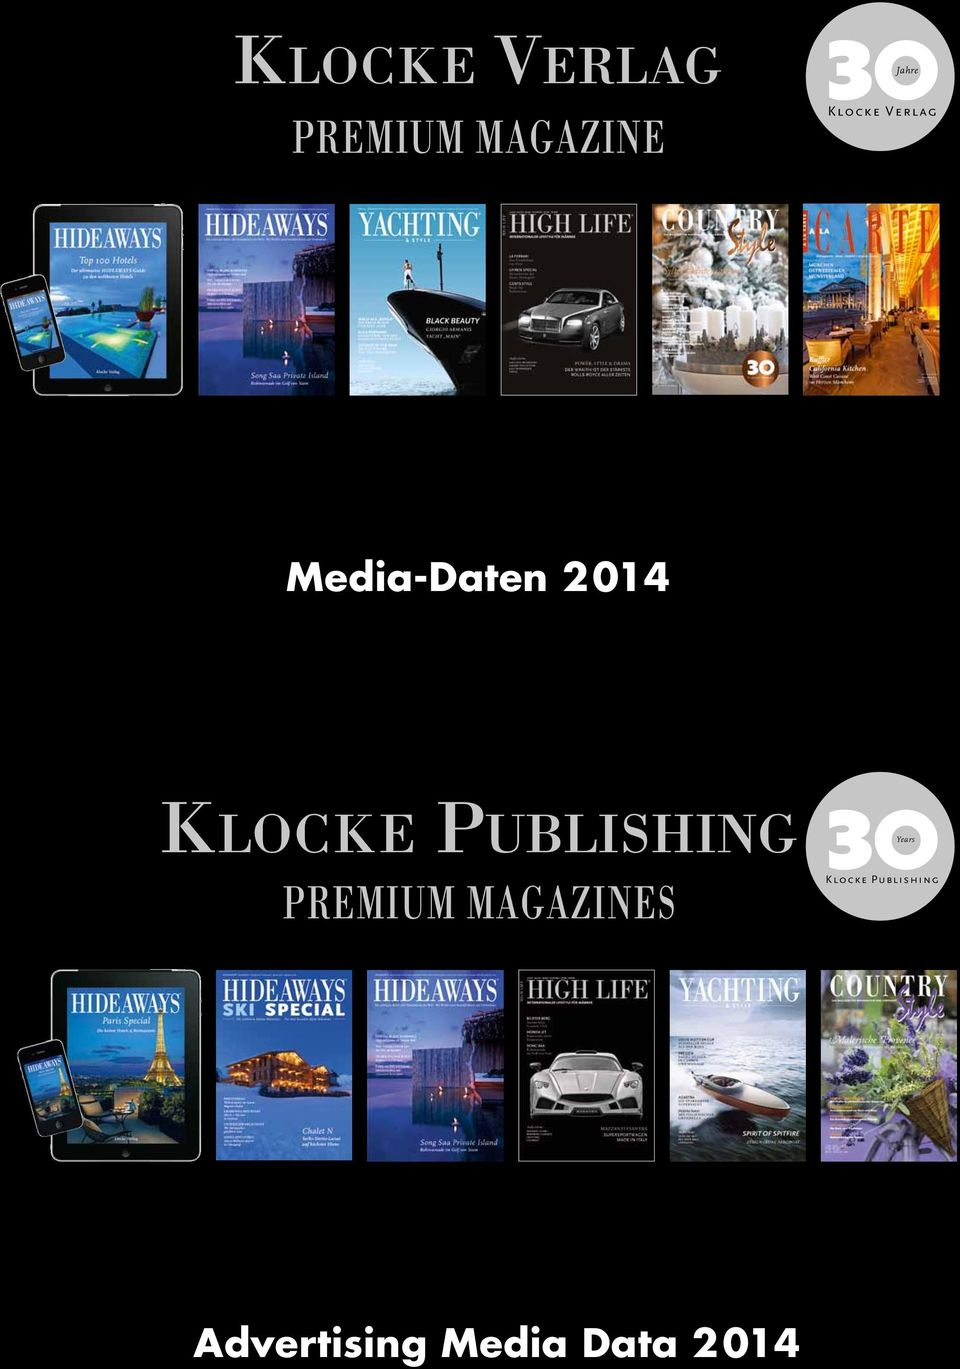 Publishing Premium Magazines Years